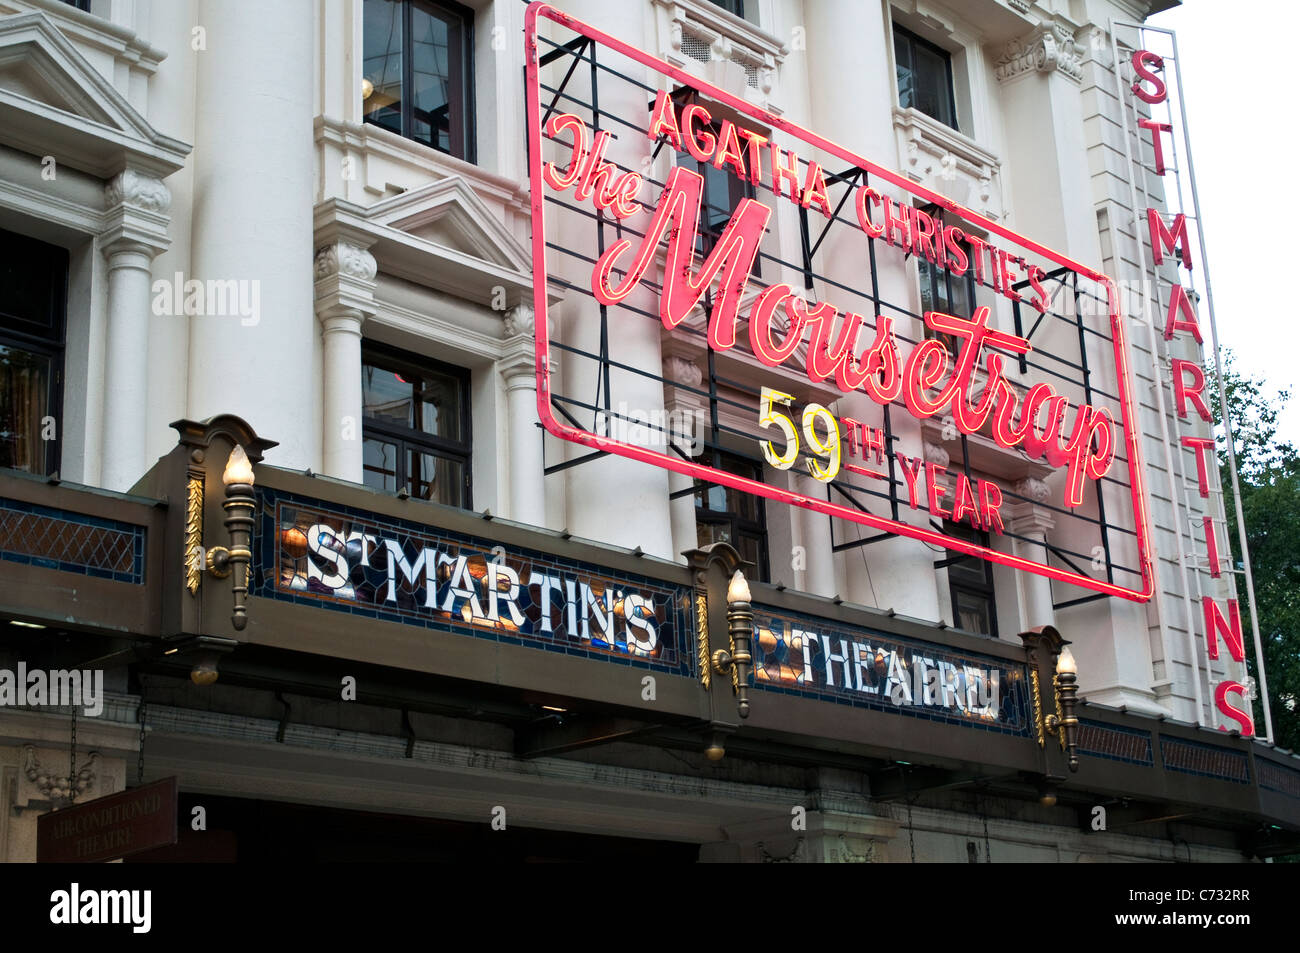 St Martin's Theatre showing Agatha Christie's Mousetrap, Covent Garden, London, UK - Stock Image